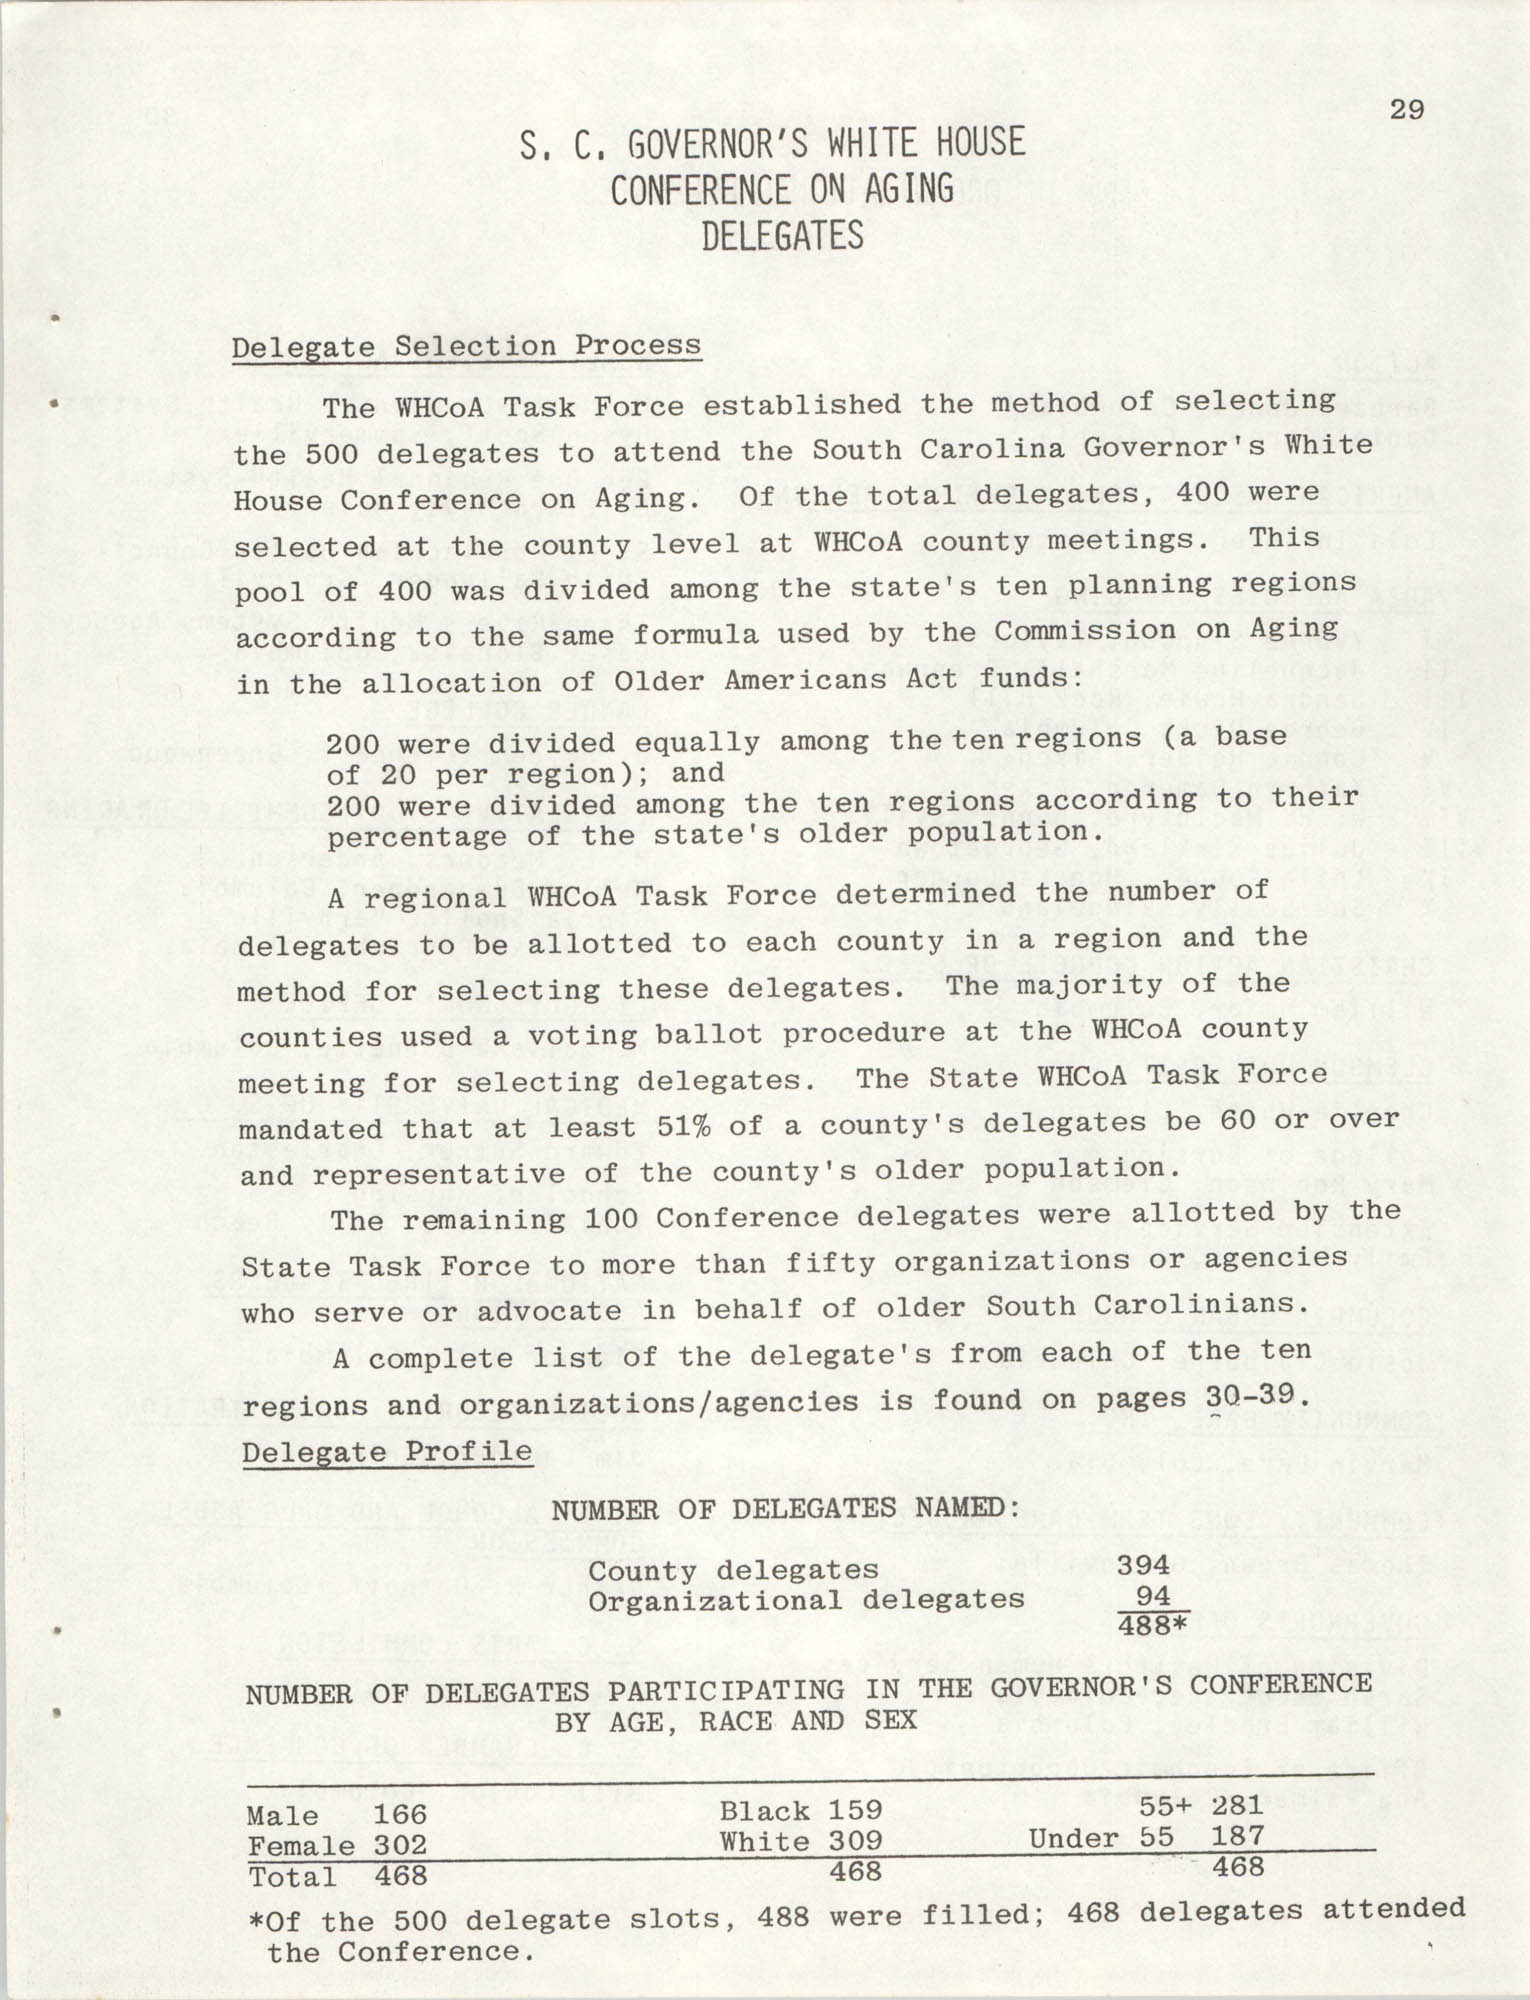 South Carolina Governor's White House Conference on Aging Proceedings, 1981, Page 29